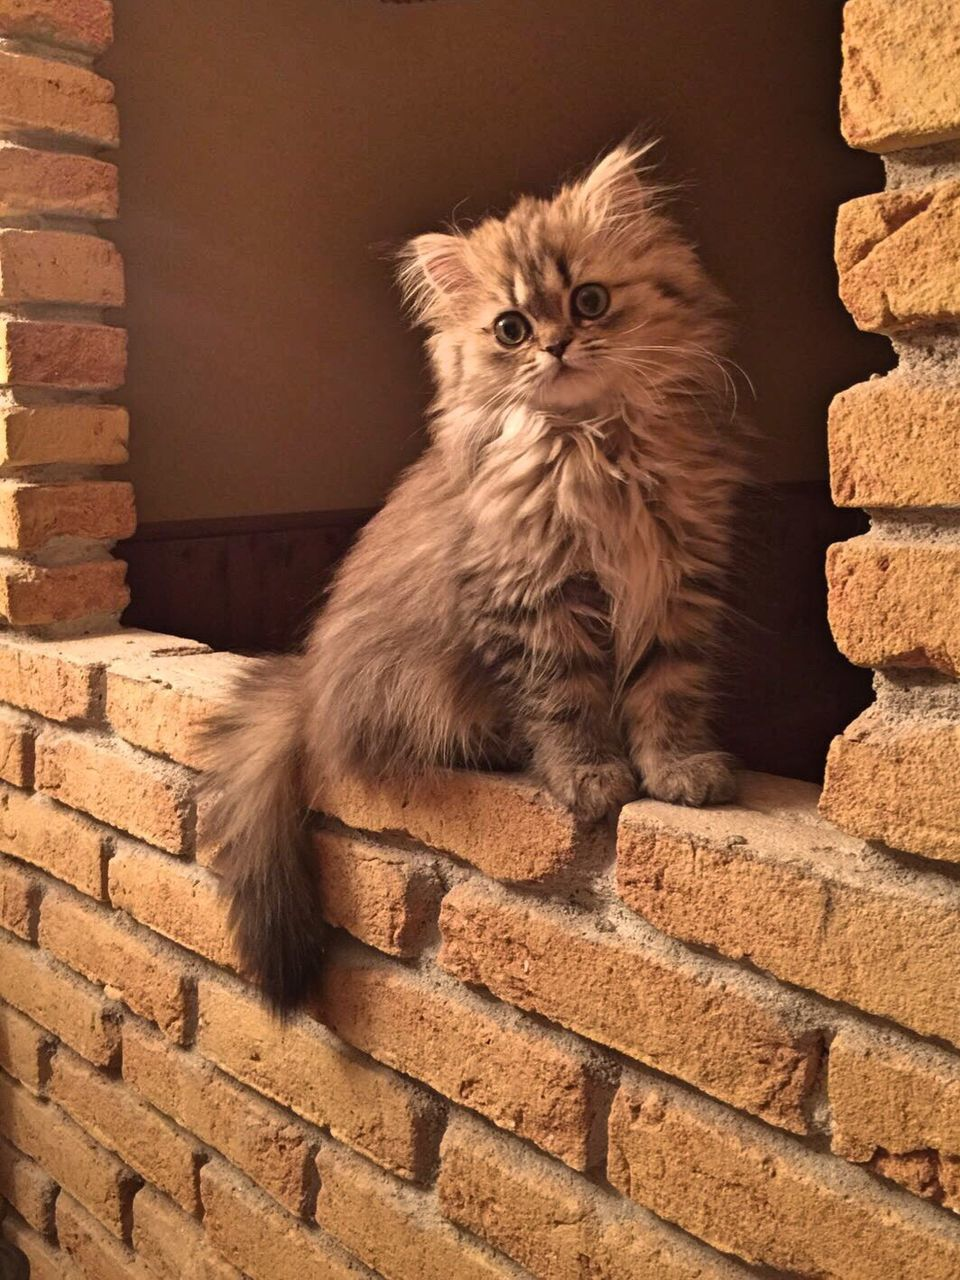 domestic cat, mammal, feline, animal themes, pets, one animal, domestic animals, brick wall, looking at camera, no people, portrait, built structure, day, indoors, persian cat, architecture